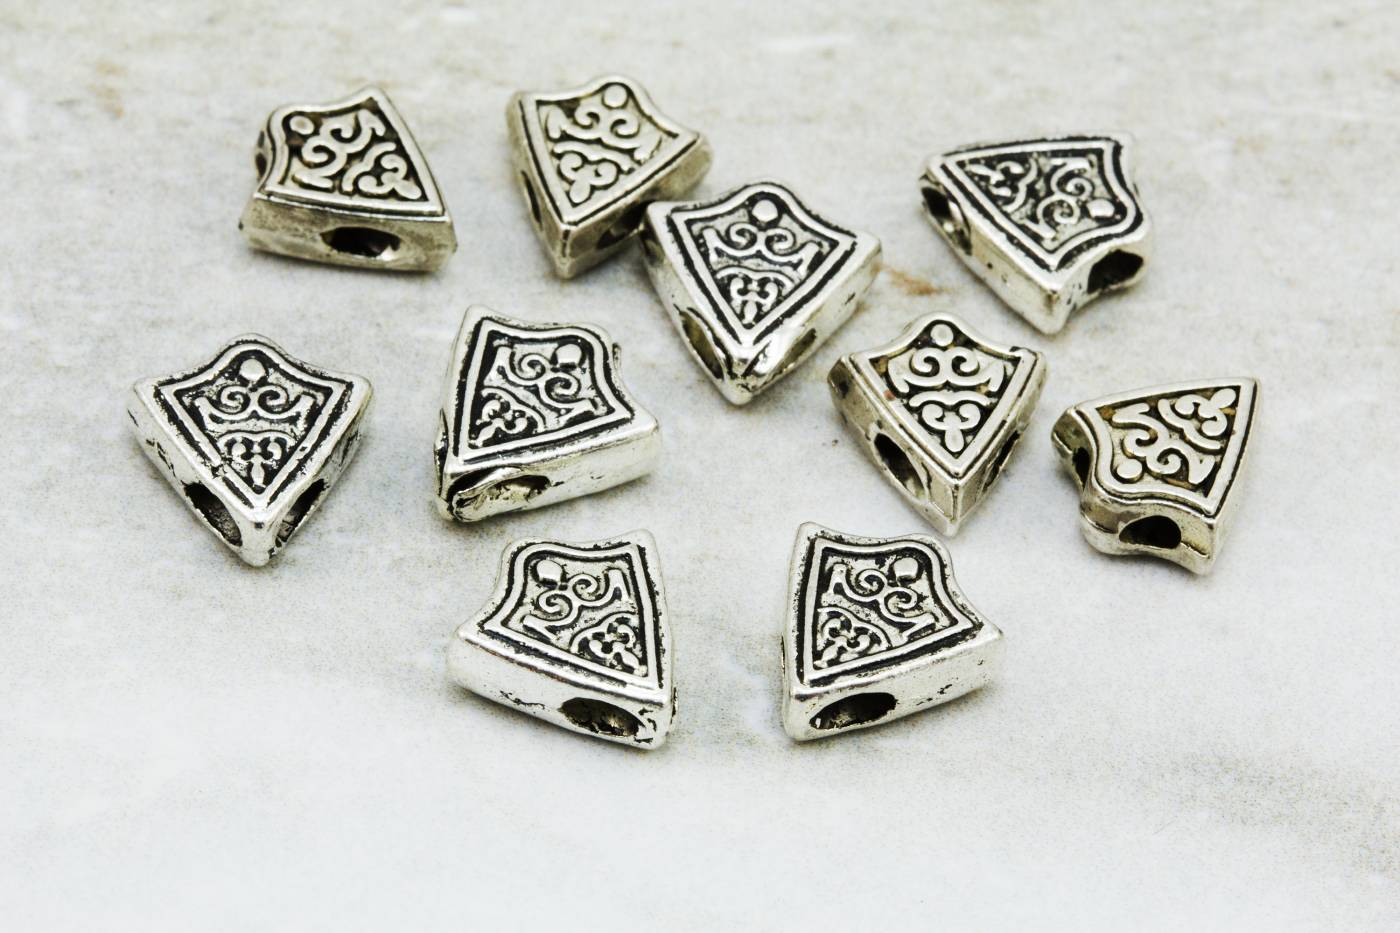 triangle-jewelry-beads-silver-charms.jpg